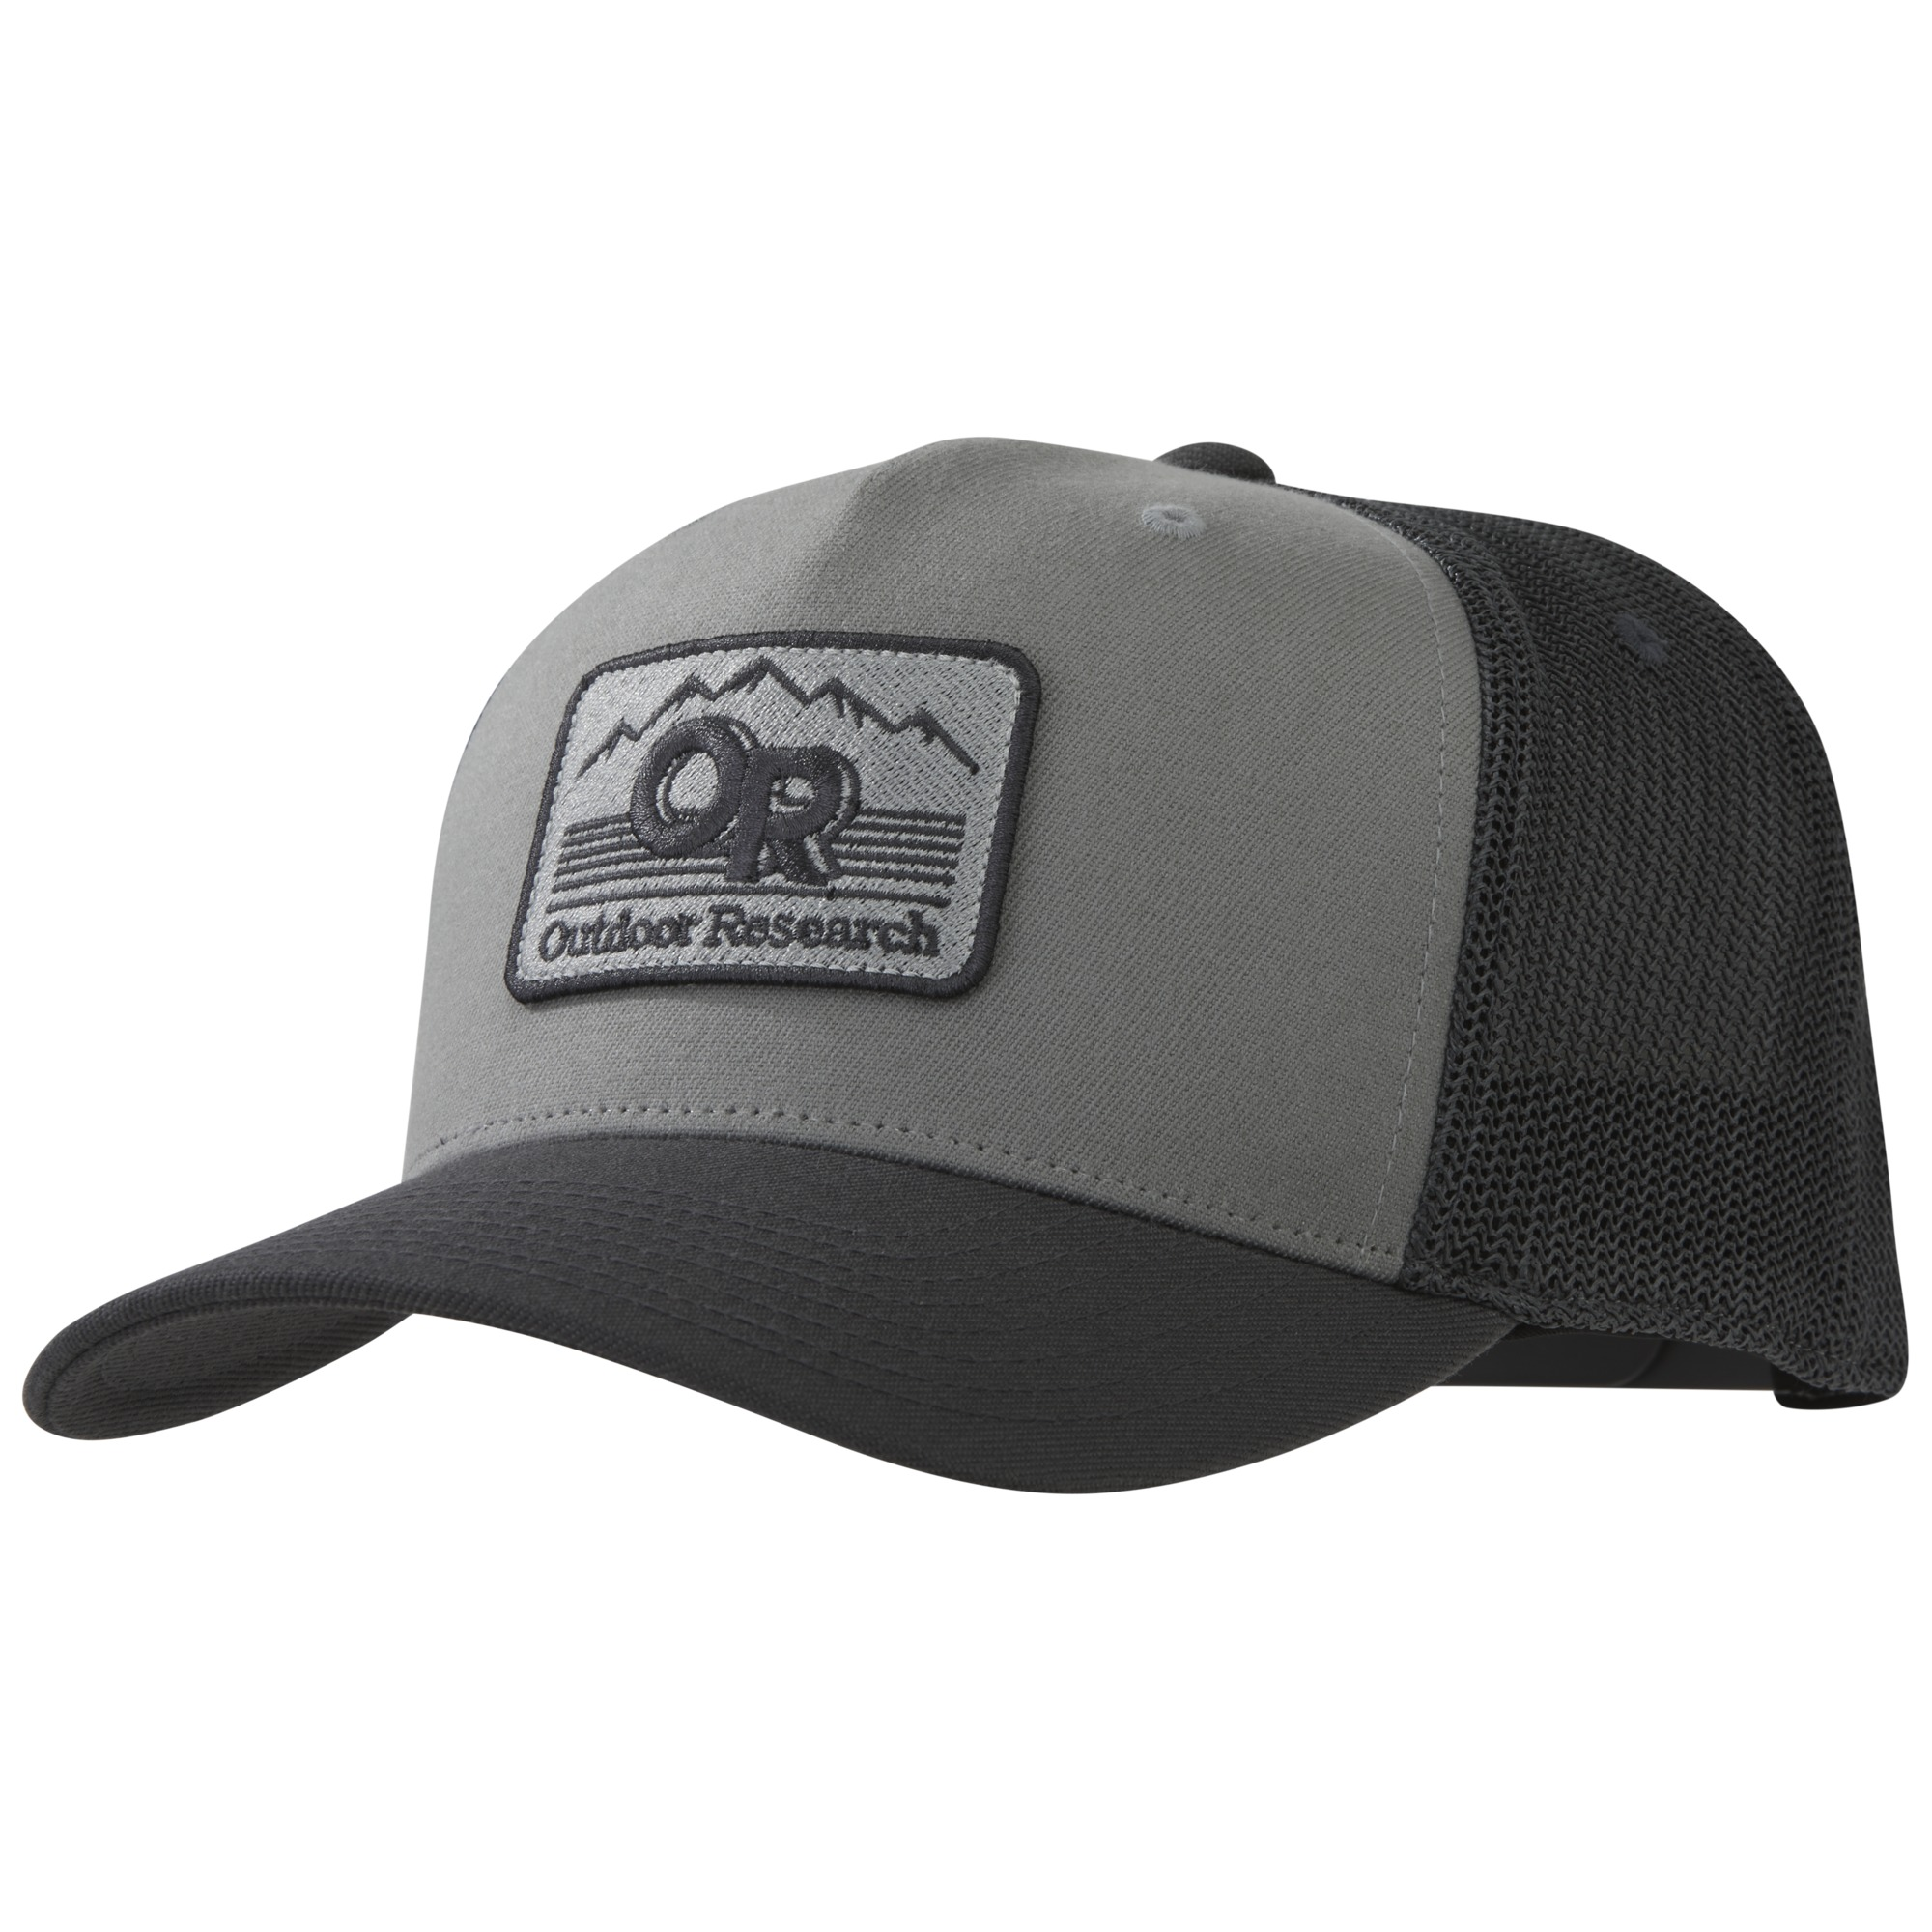 721ae9b41 Advocate Trucker Cap - storm | Outdoor Research